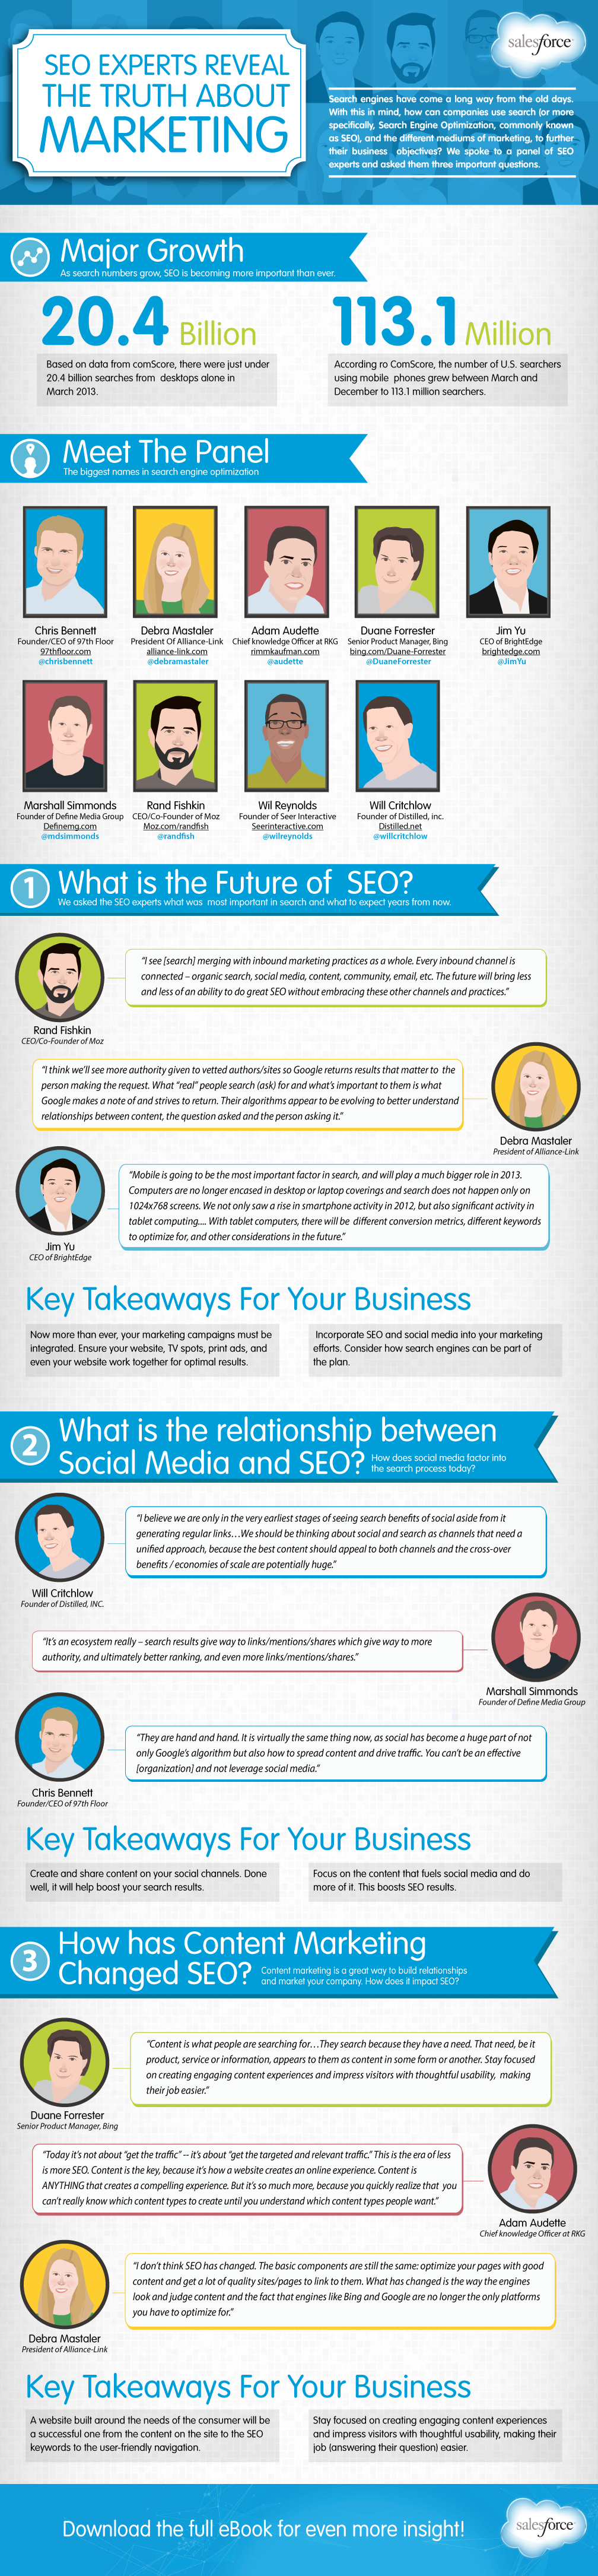 Infographic : SEO Experts on the Future of Marketing